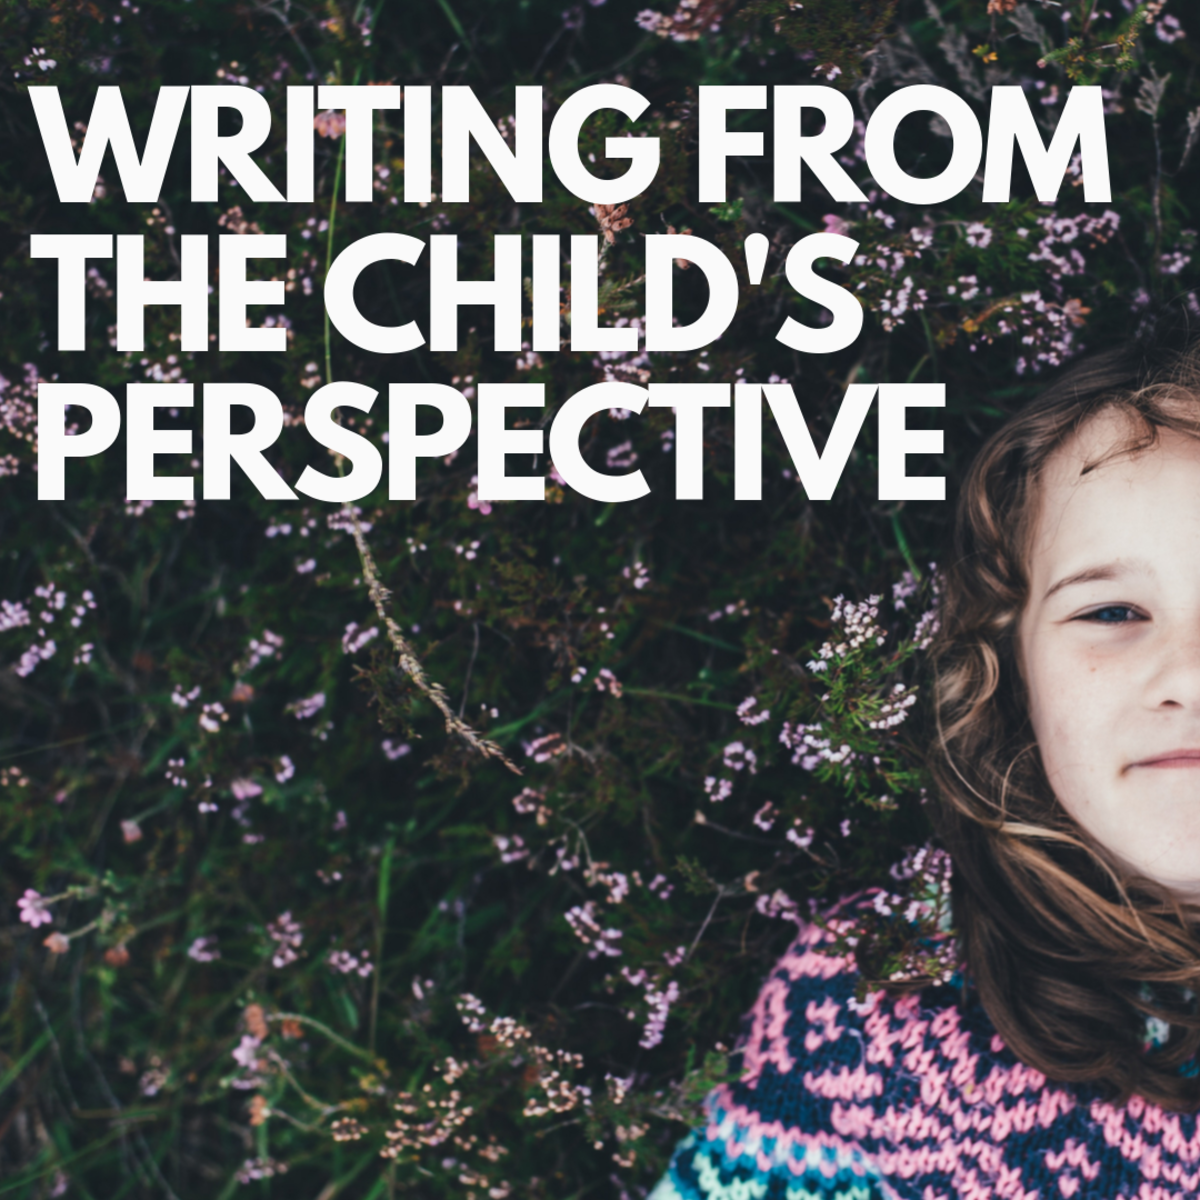 Writing From the Child's Perspective